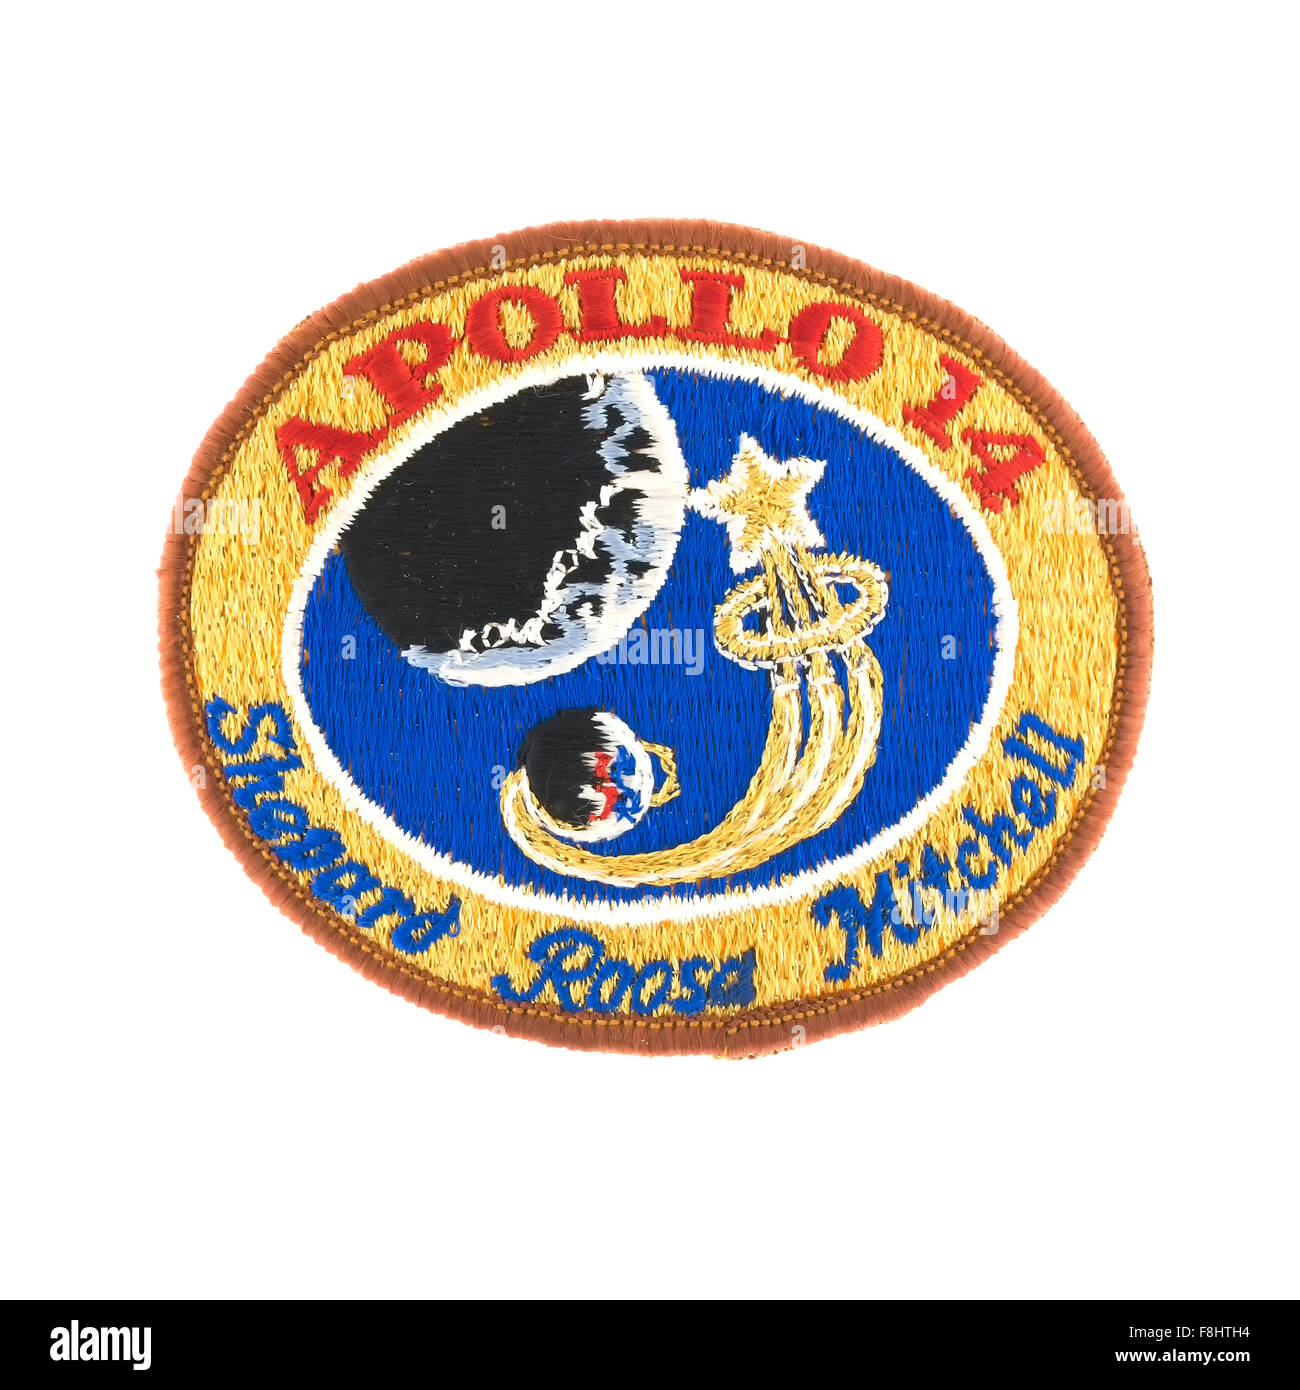 Apollo 14 Mission Badge from the NASA Moon landing with Astronaut's Shepard Roosa Mitchell on a white background - Stock Image